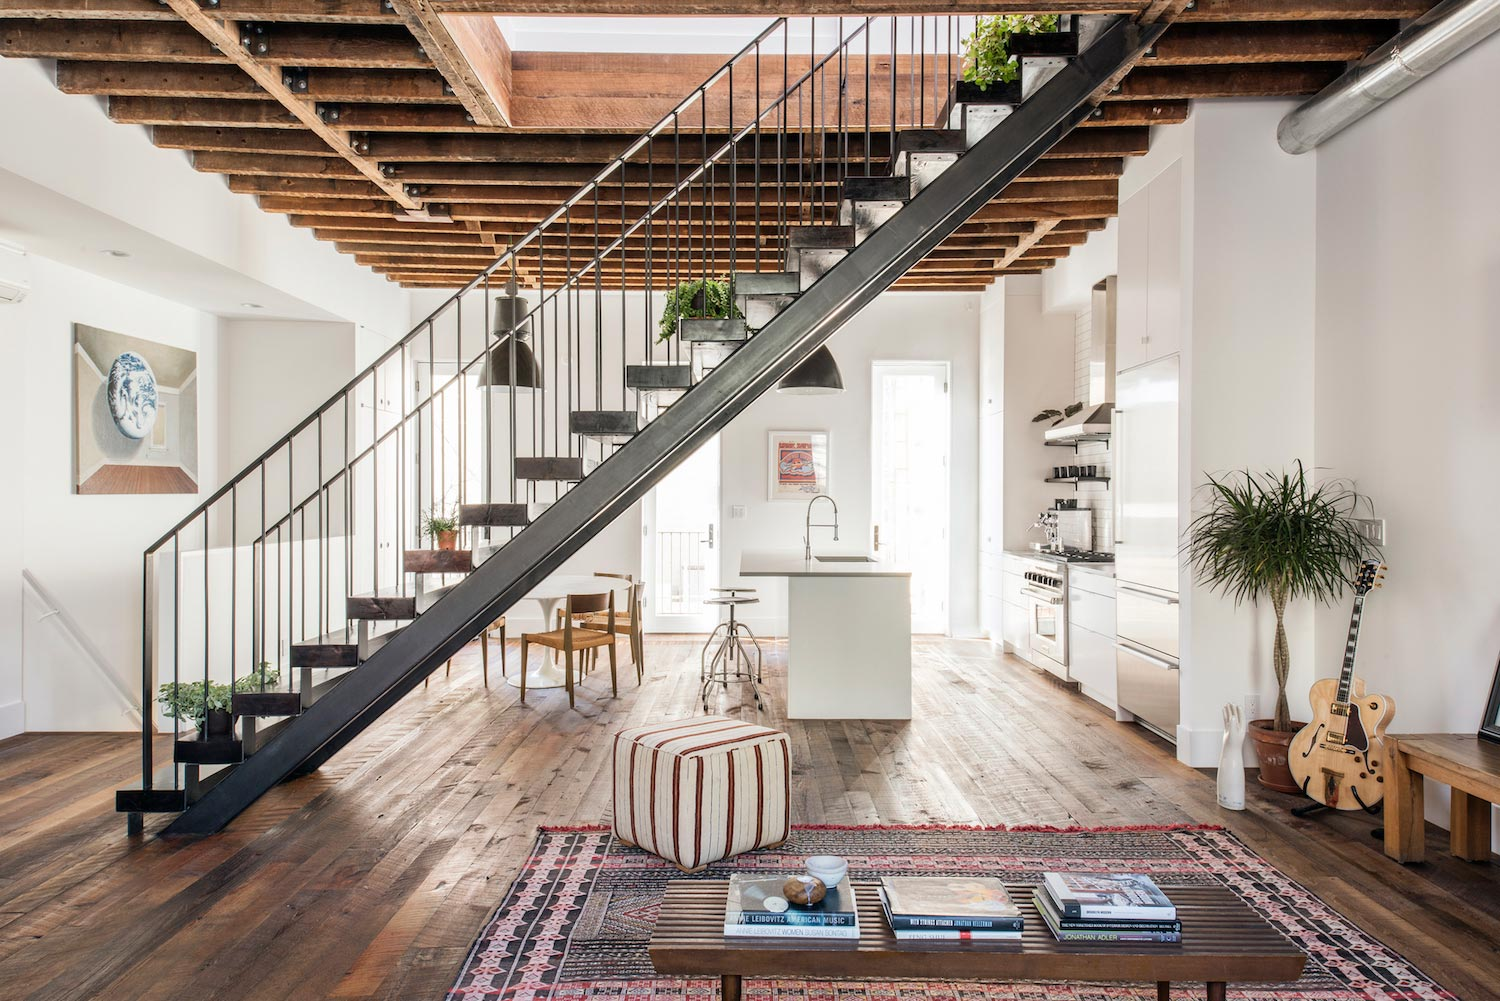 Two Family House With A Rustic Feel Of